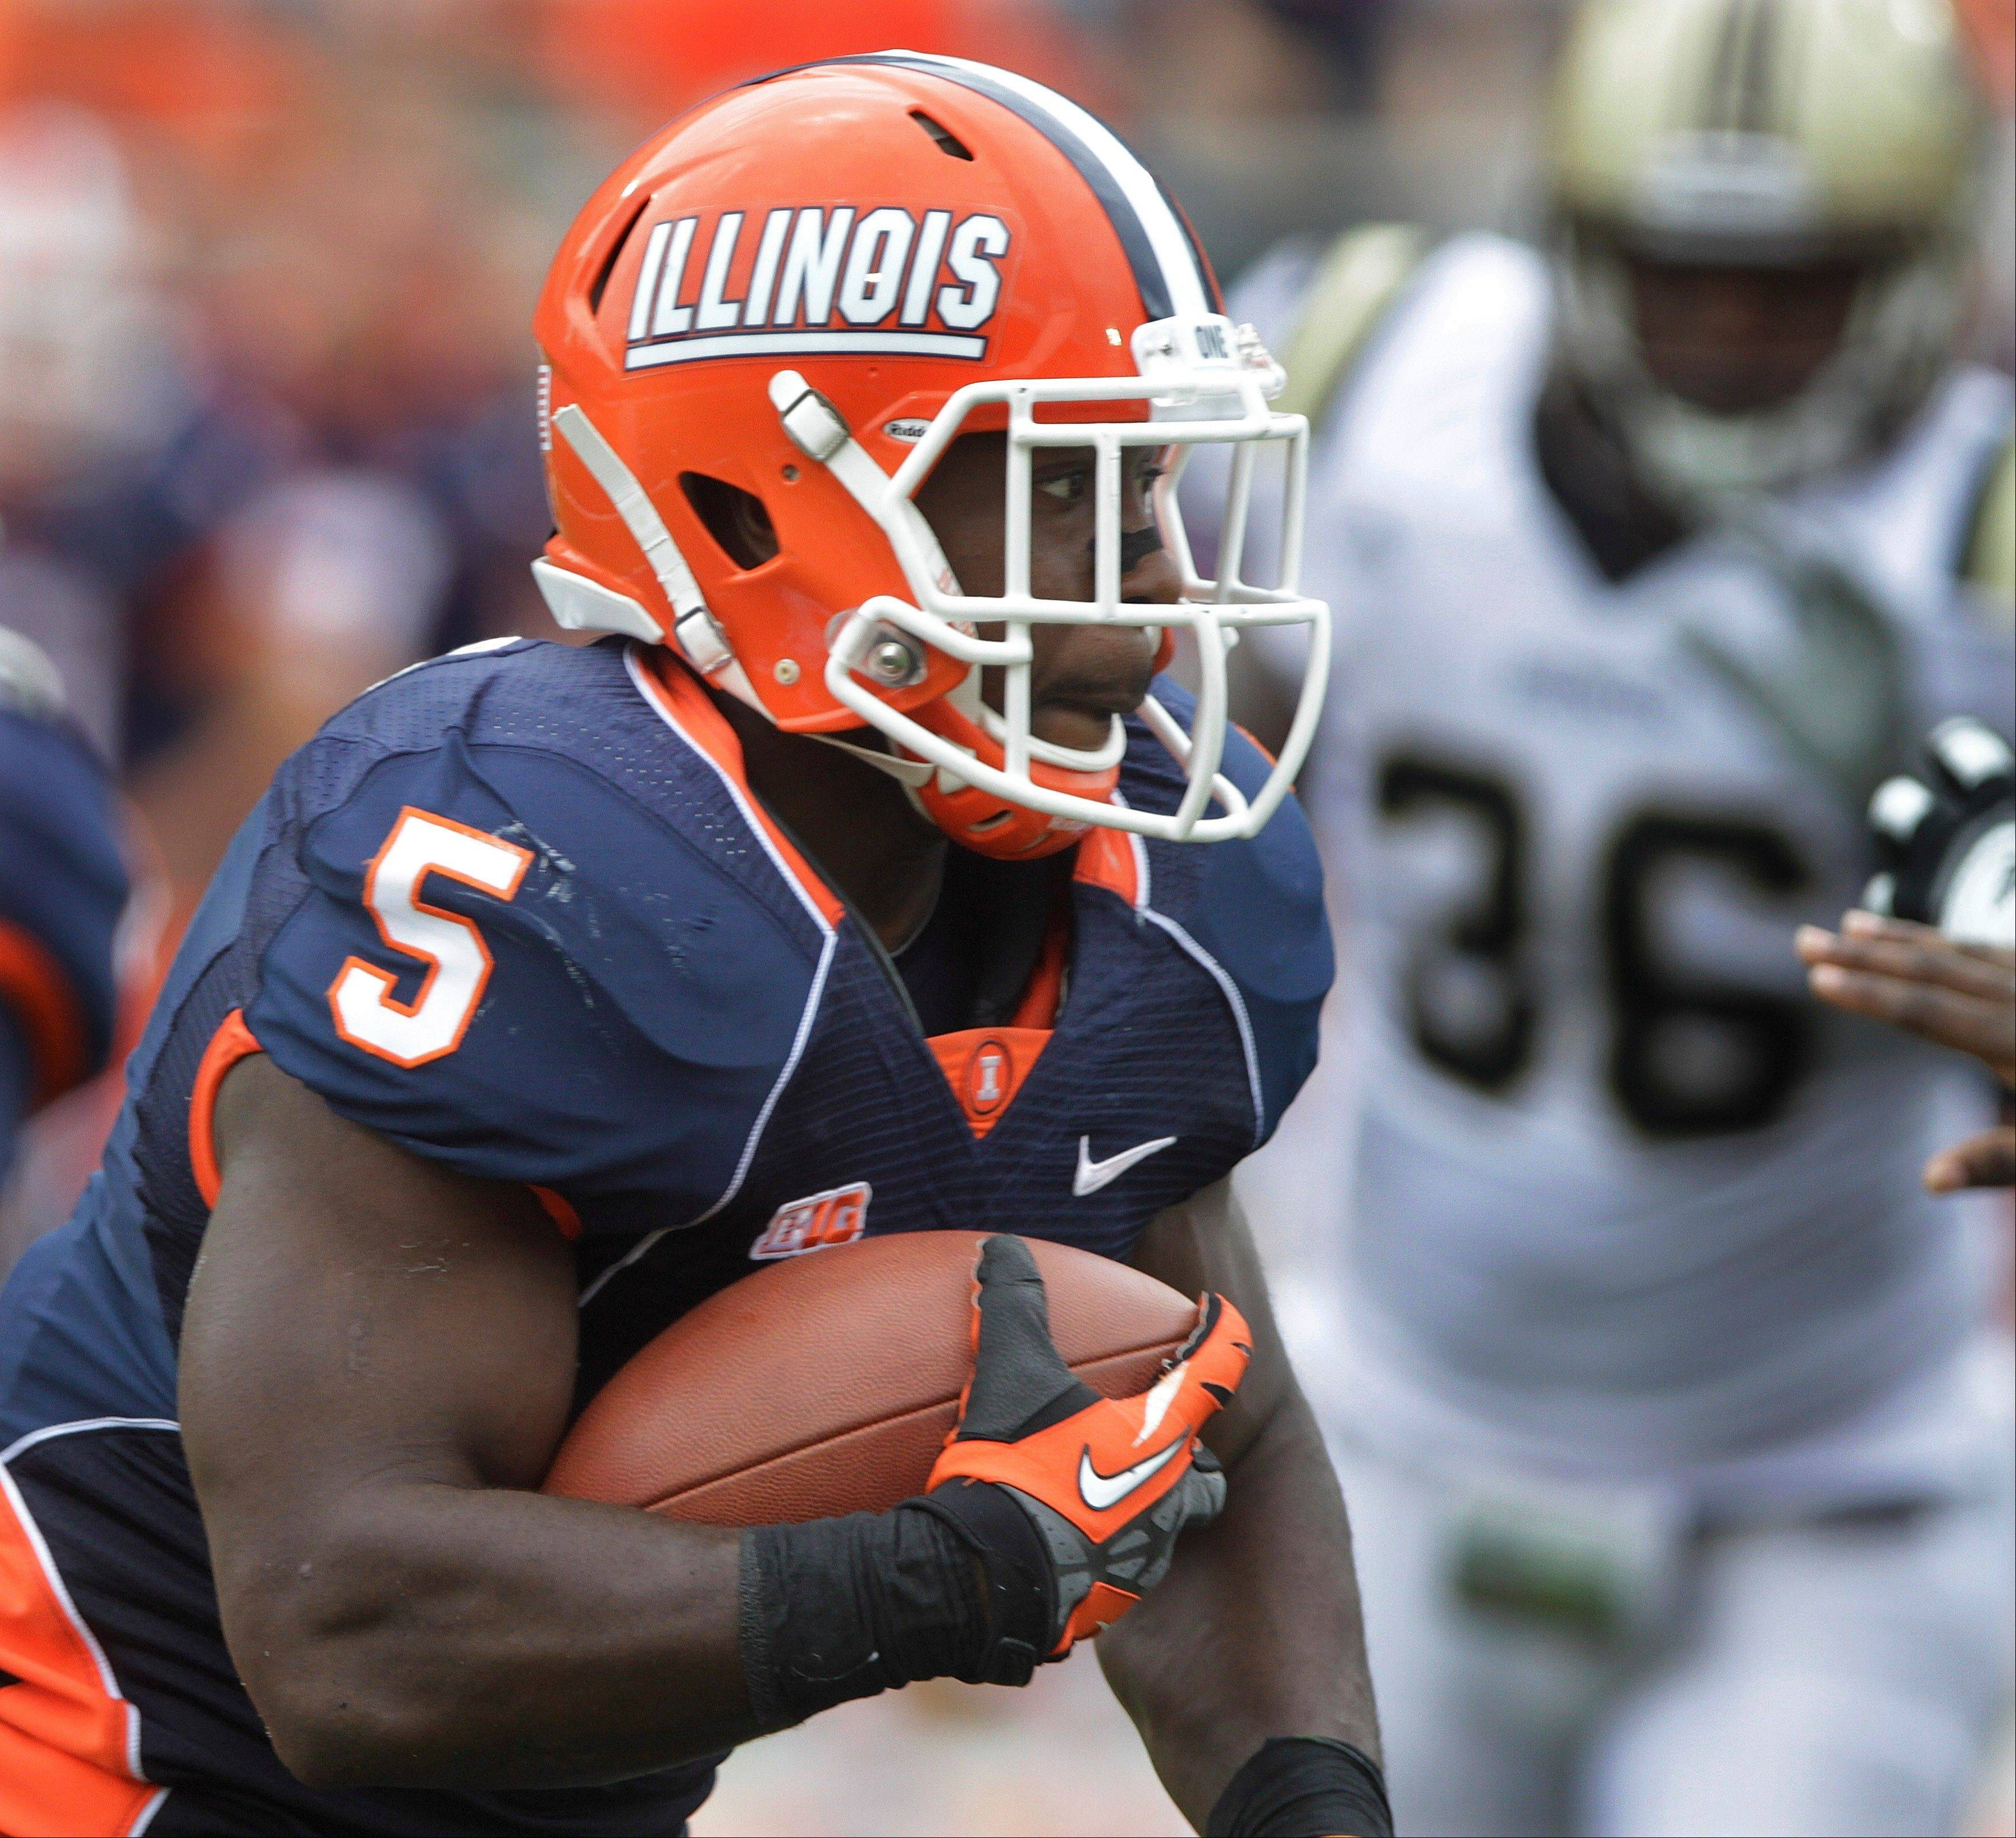 Illinois' Donovonn Young runs with the ball against Western Michigan during the second half of Saturday's 24-7 win in Champaign. The Illini travel to Arizona State this weekend.